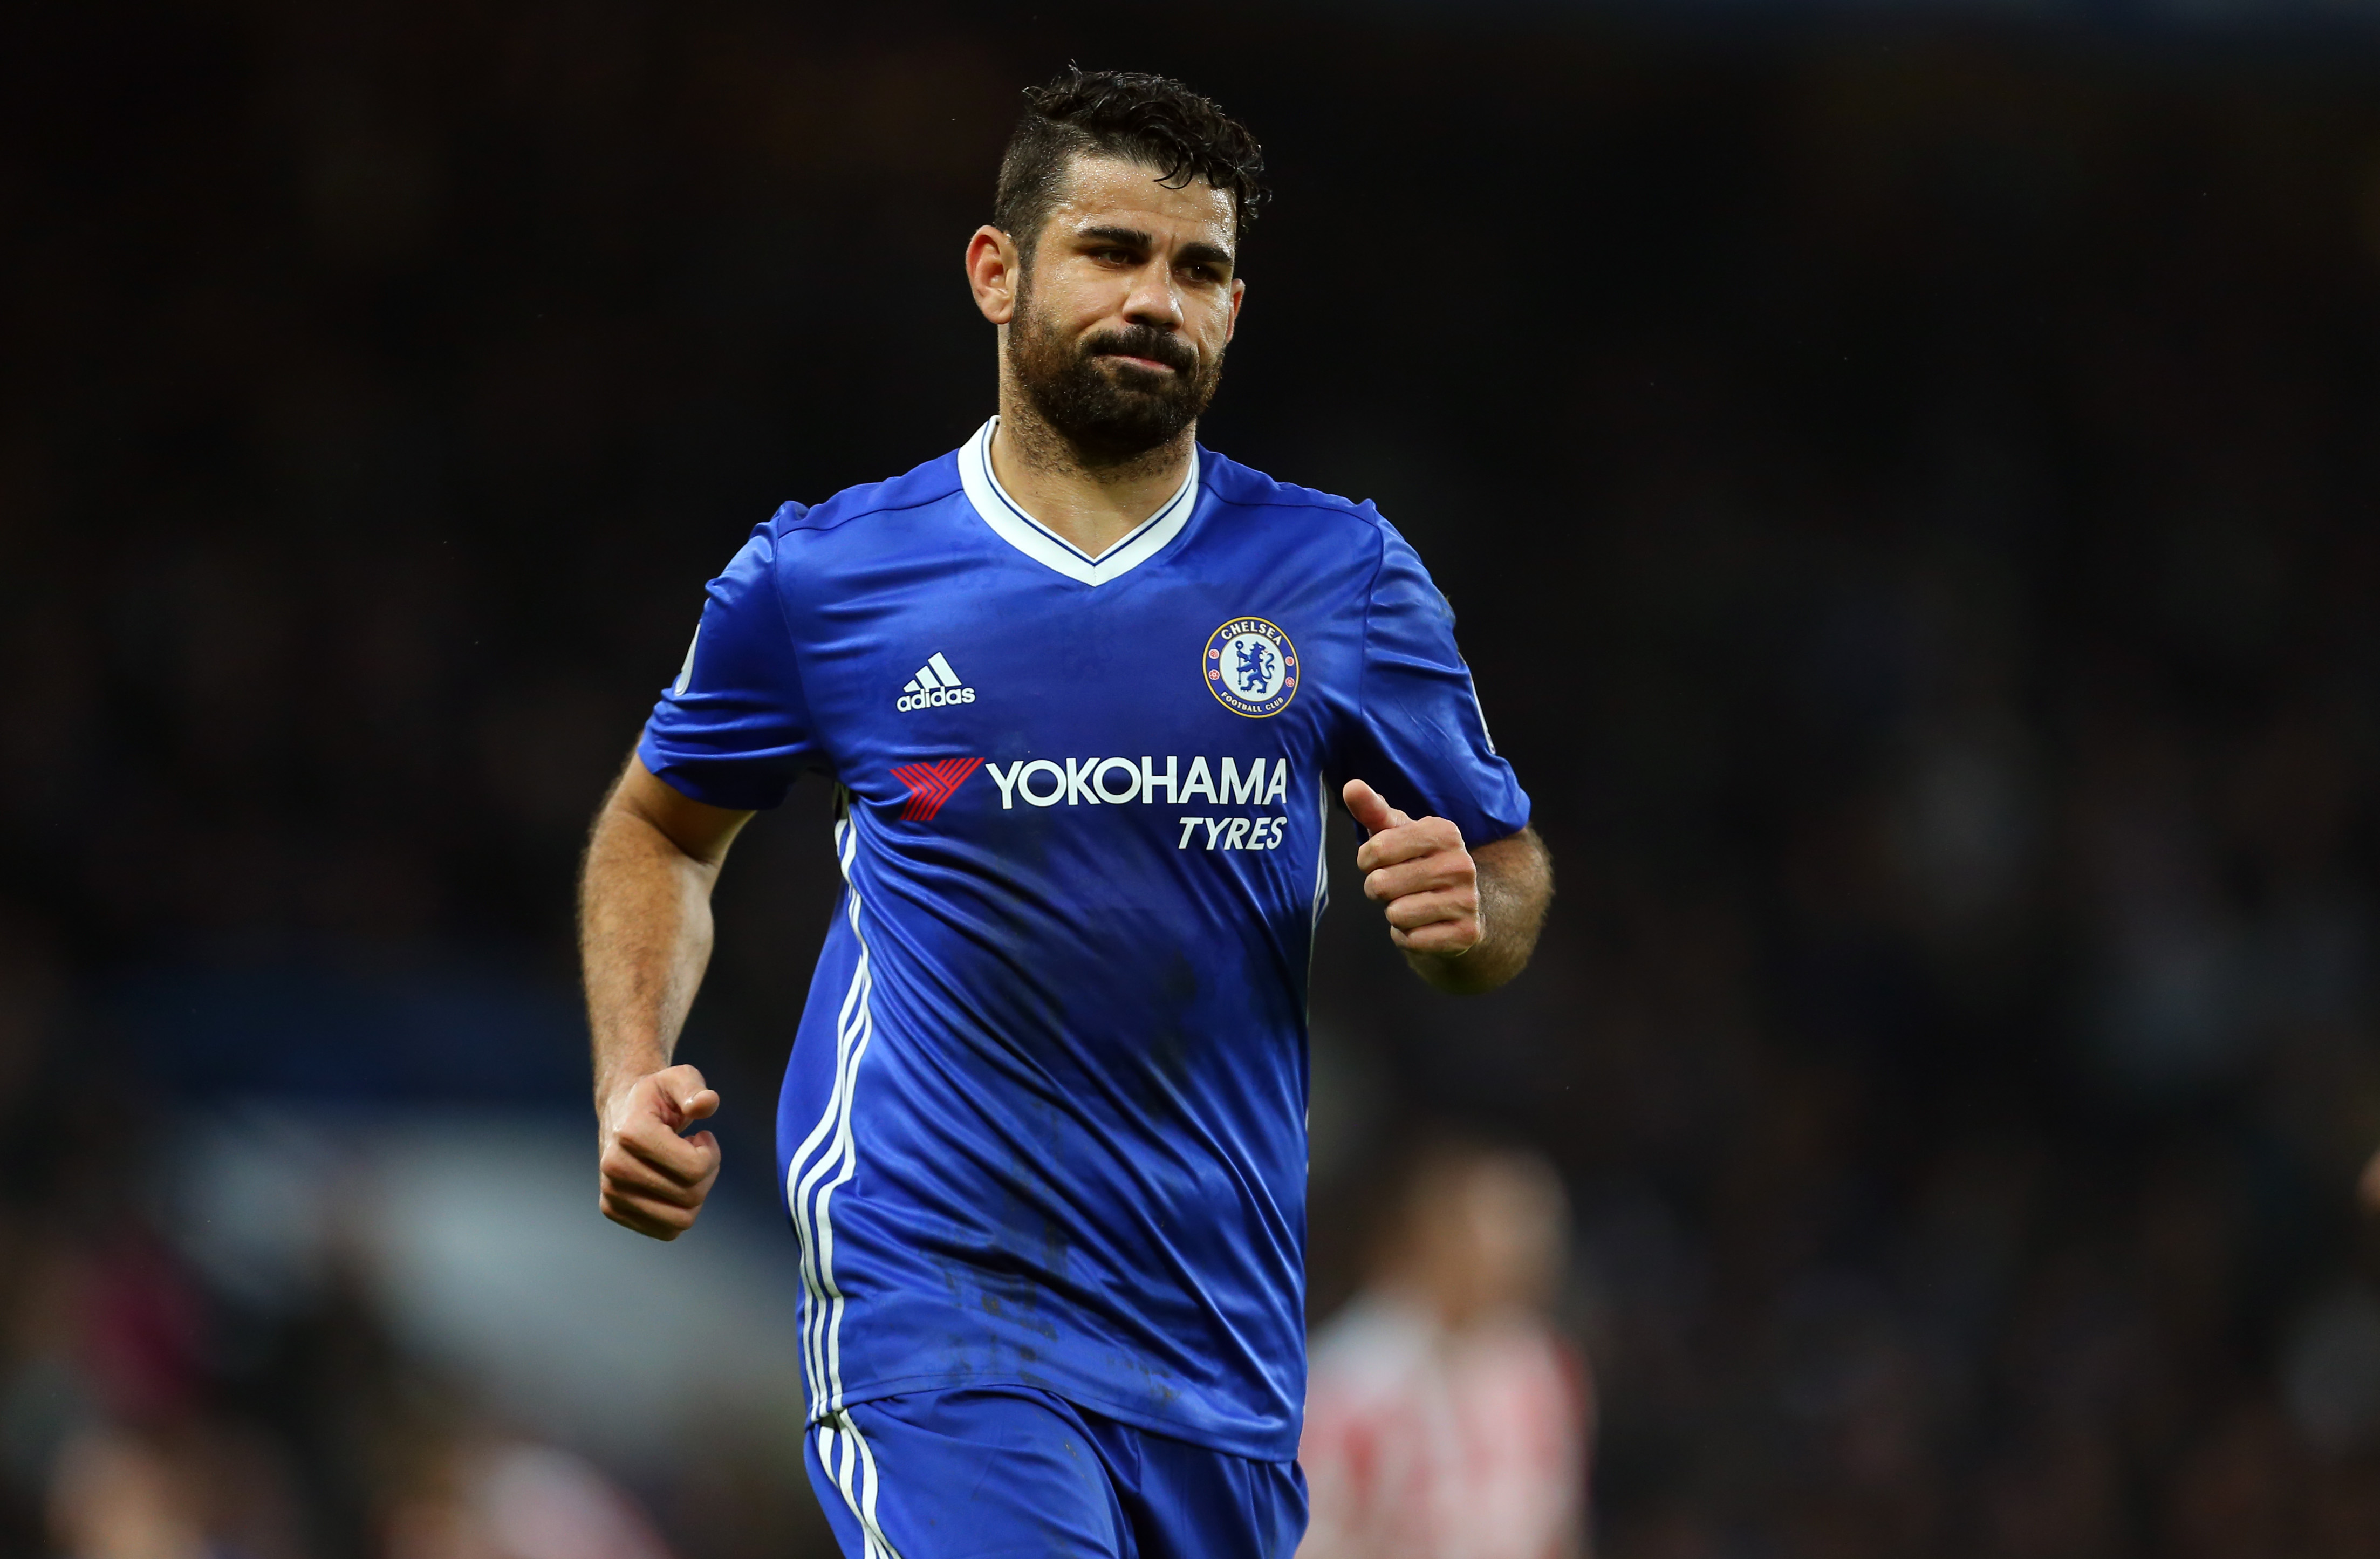 Chelsea v Hull team news: Diego Costa starts for Blues as Willian drops out